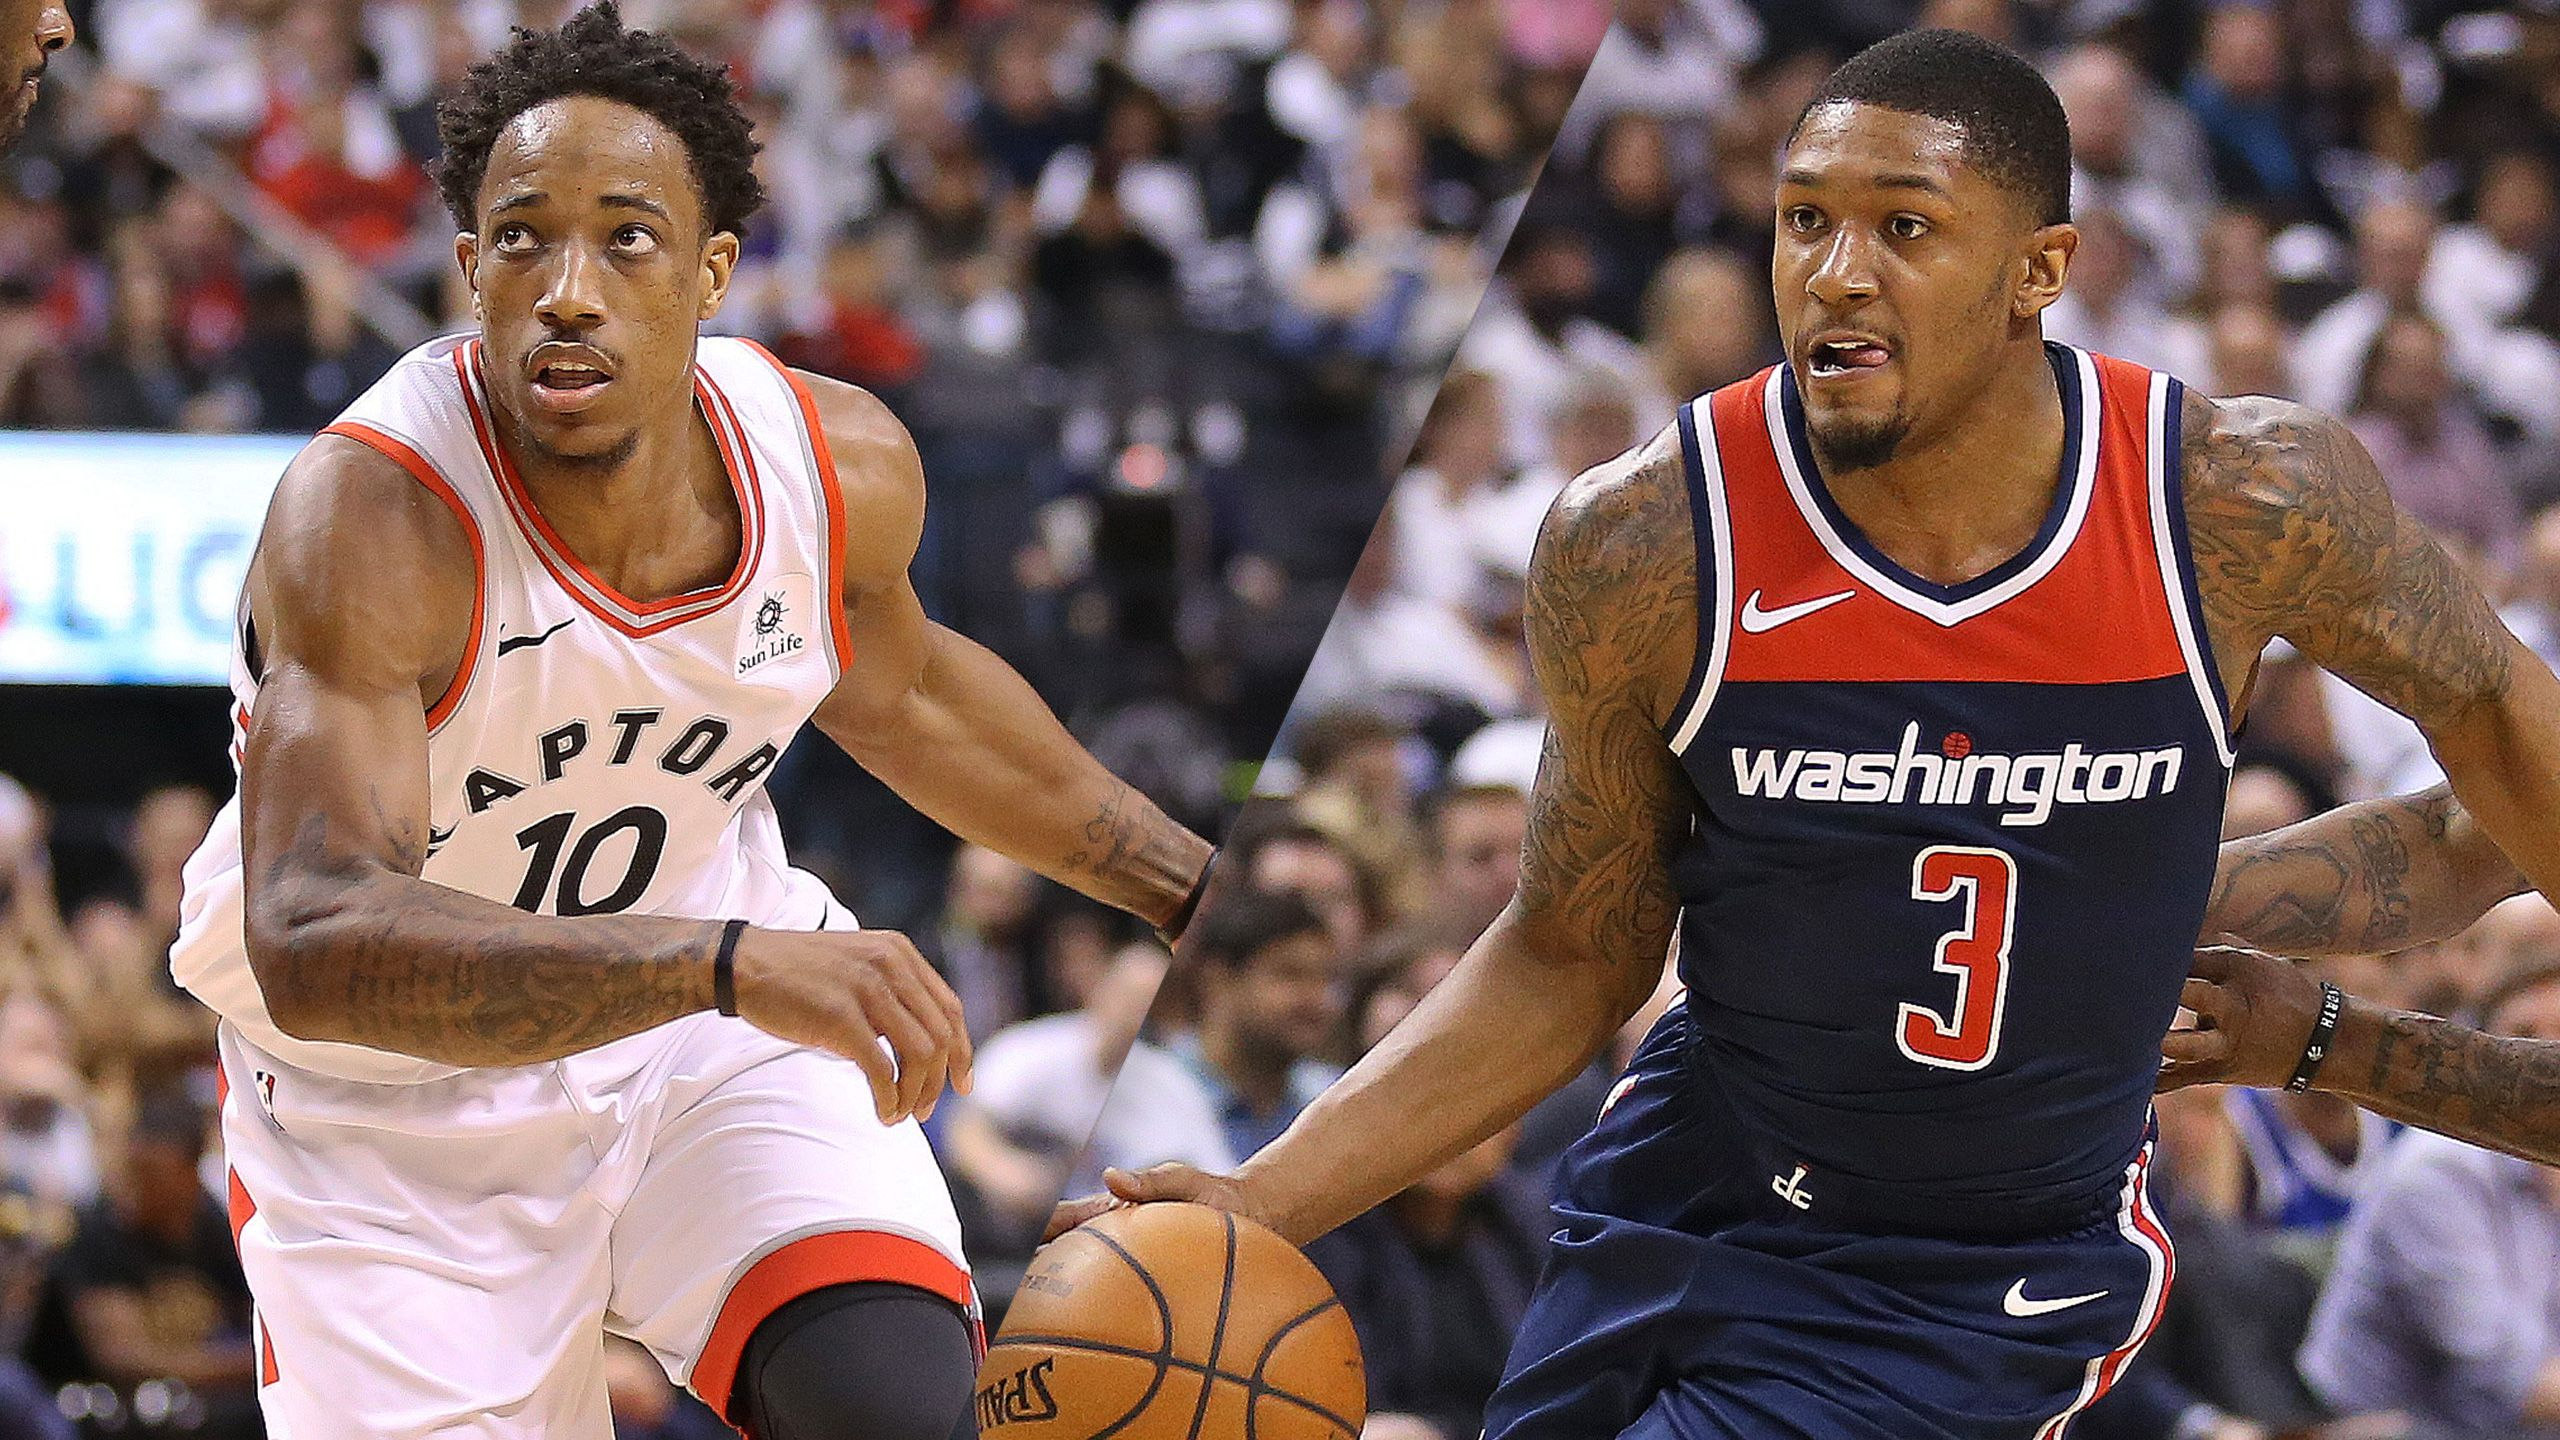 Toronto Raptors vs. Washington Wizards (First Round, Game 3) (re-air)